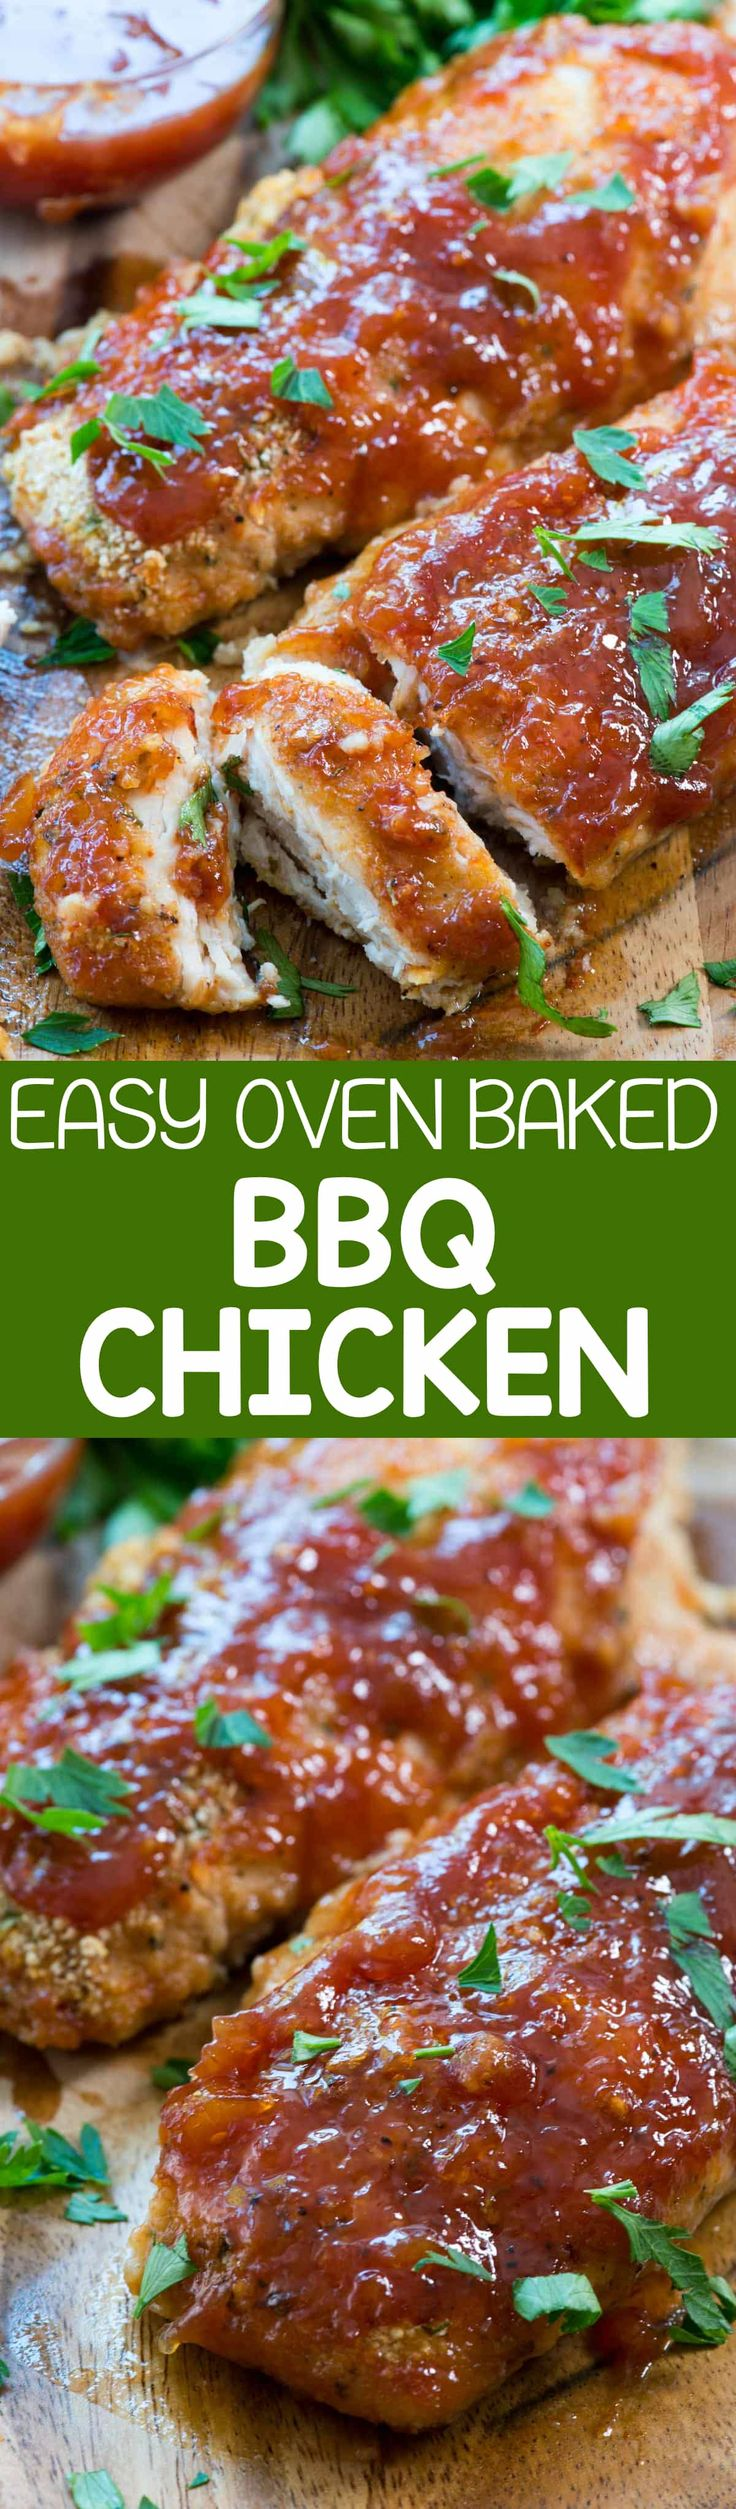 Easy Oven Baked BBQ Chicken - this easy chicken recipe takes is FULL of BBQ sauce flavor and is made in the oven for a quick weeknight meal. The chicken always comes out perfect!